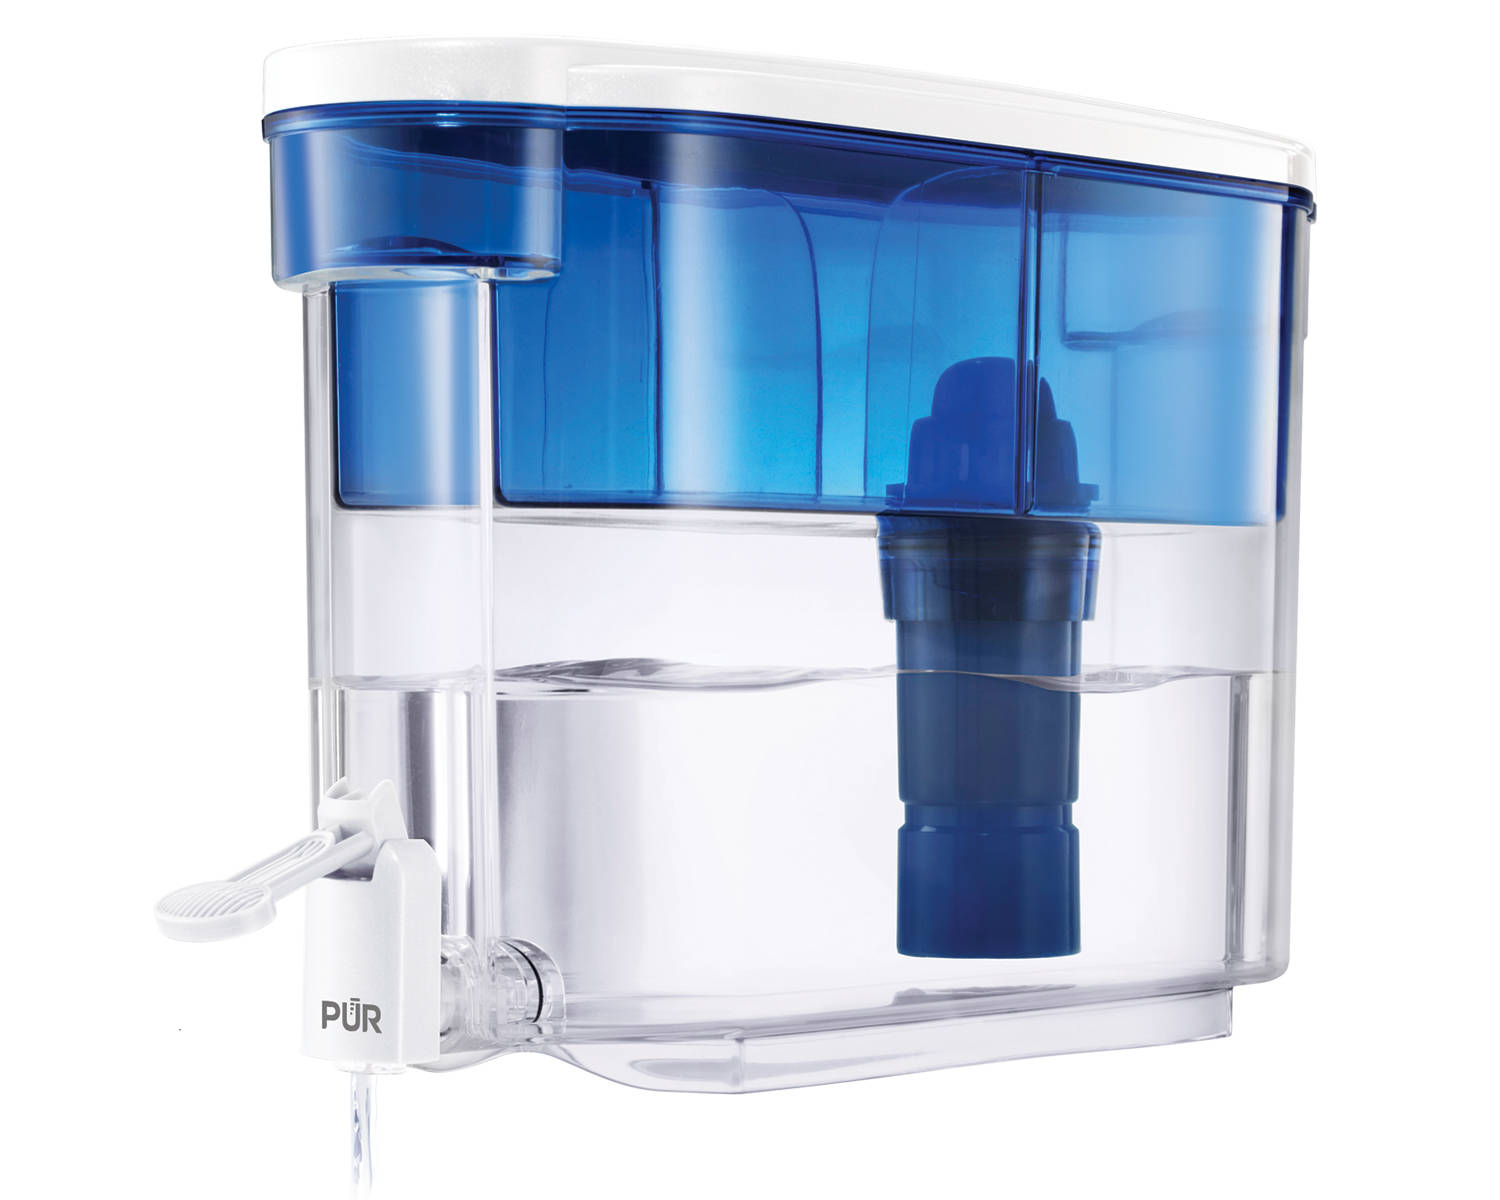 PUR  18 Cup Water Filter Dispenser. PUR 18 Cup Water Filter Dispenser nbsp  DS 1800Z   Walmart com